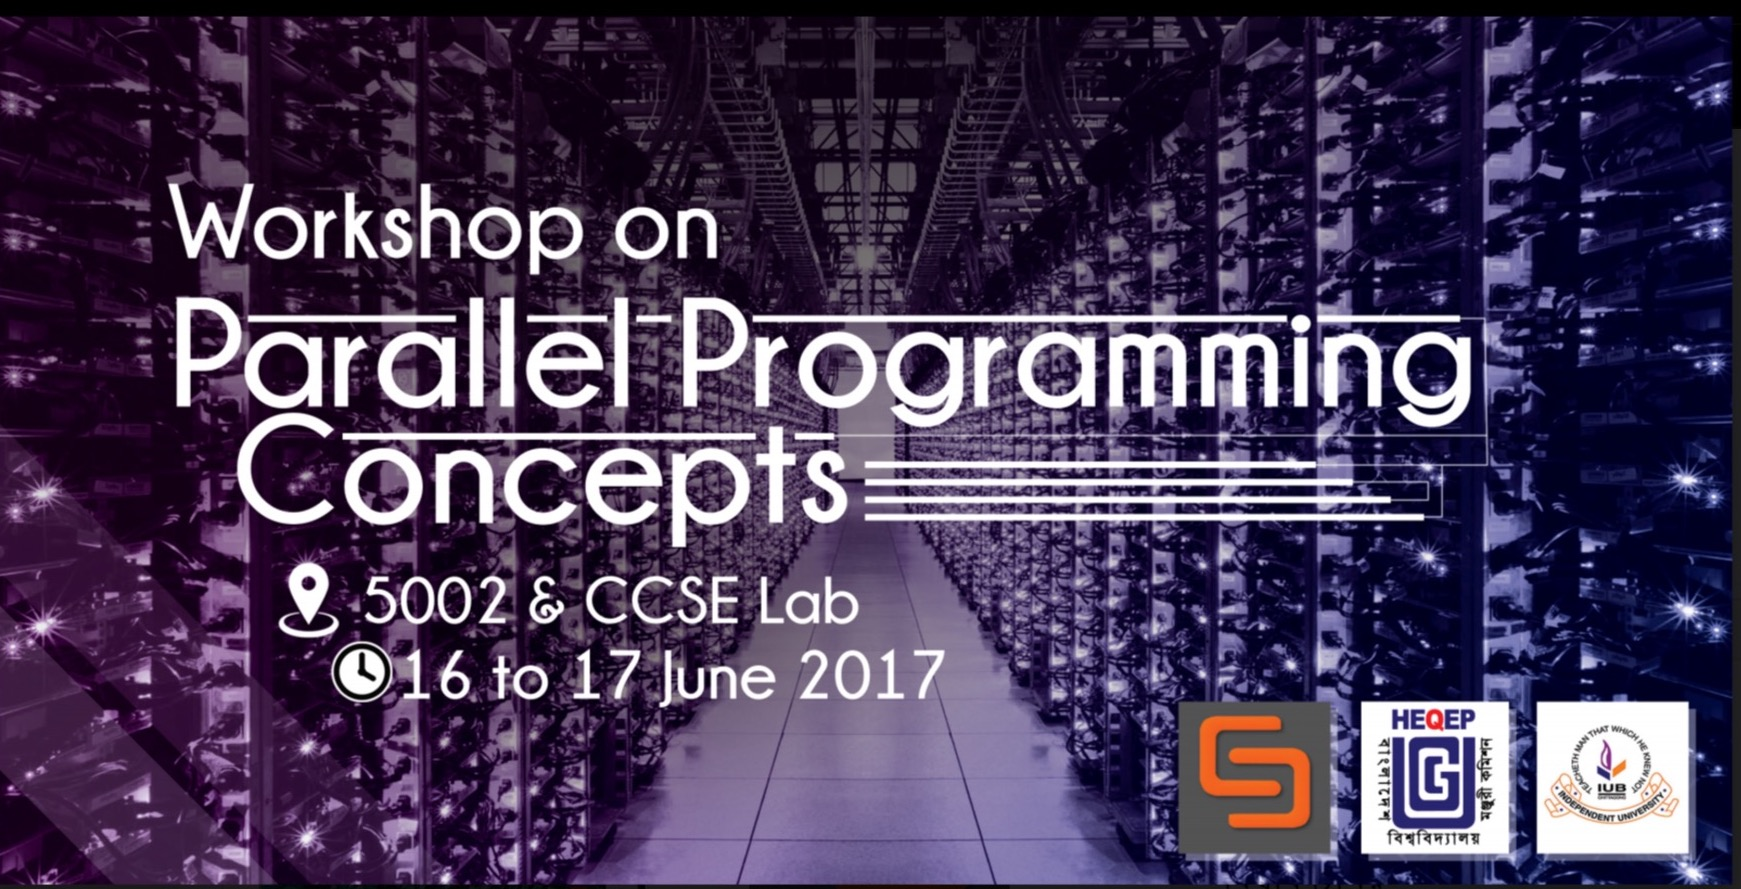 Workshop on Parallel Programming Concepts